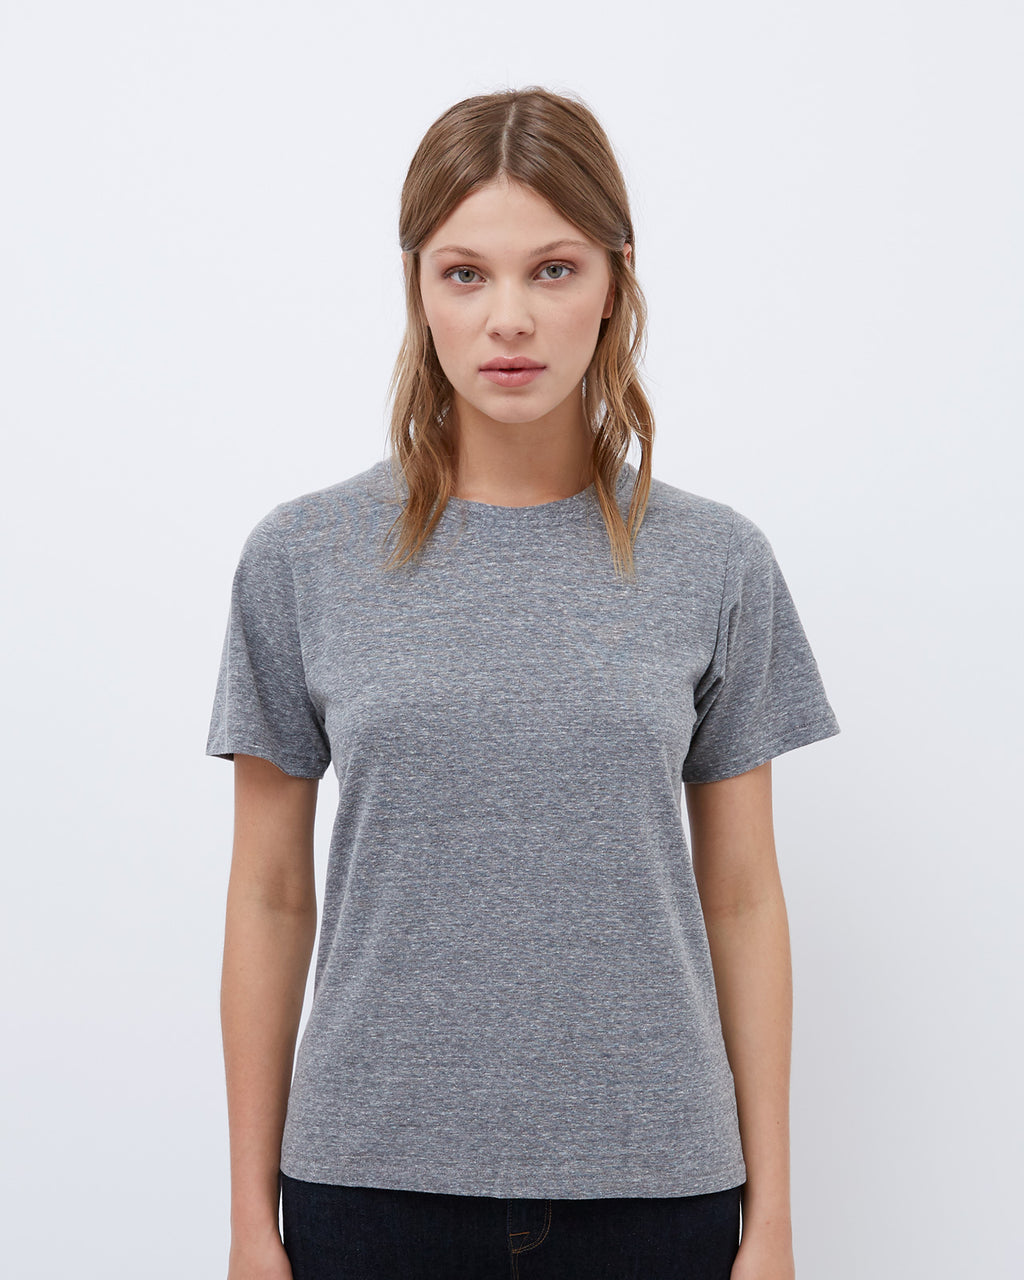 The Short Sleeve Crew Neck Tee in Heather Grey